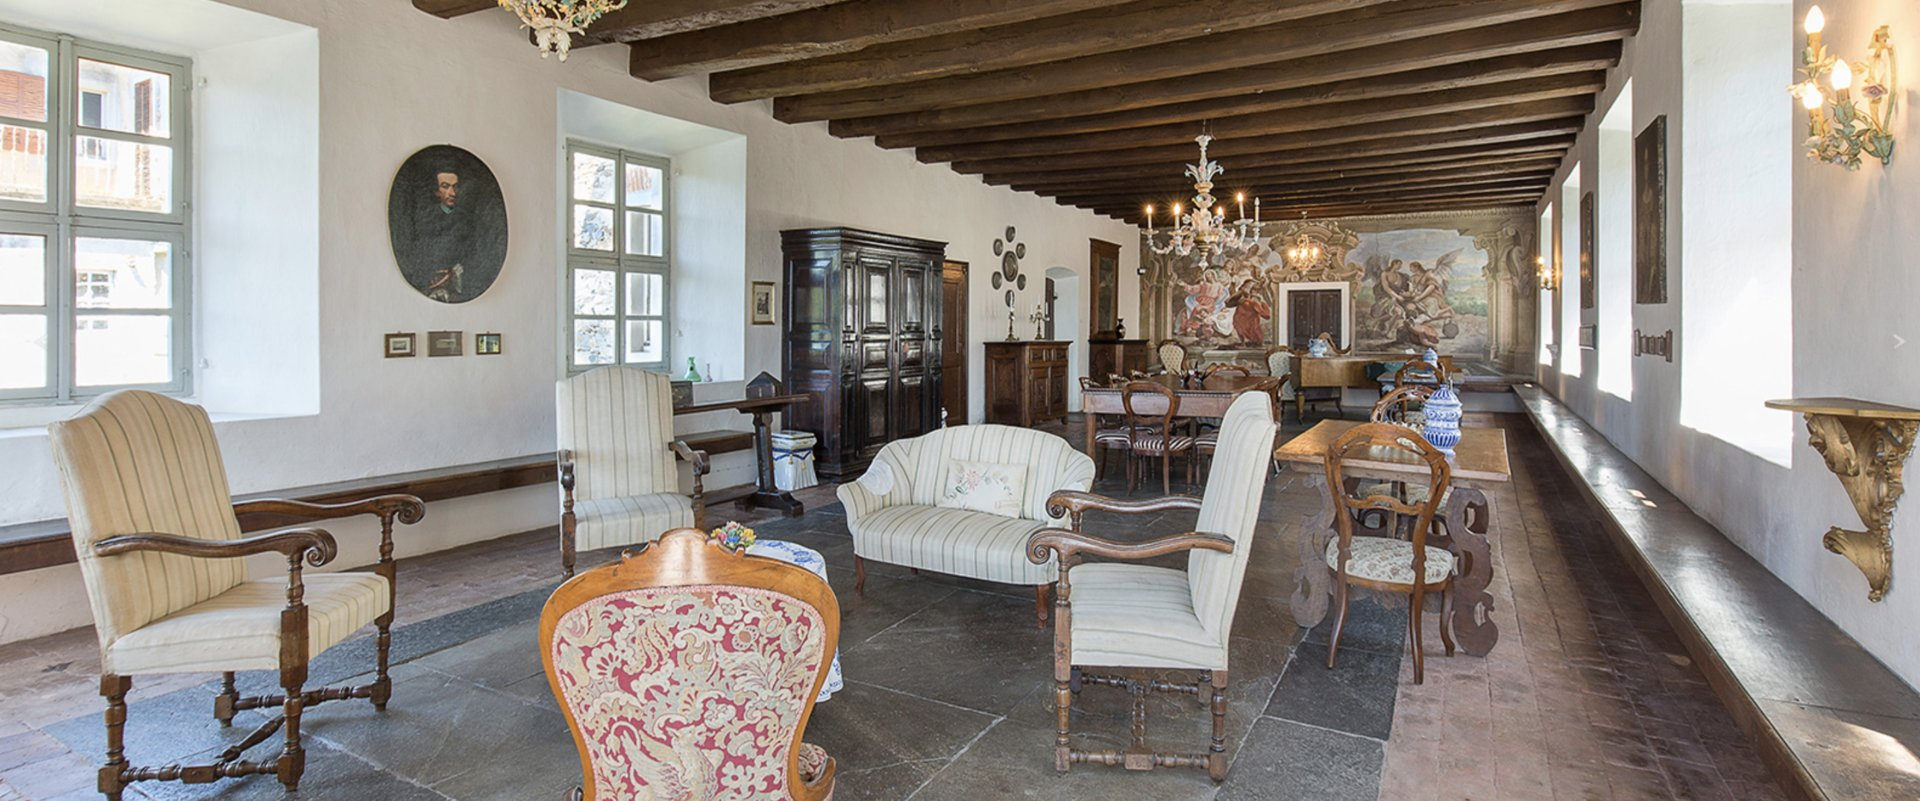 Historic property former convent for sale in Orta - sitting room